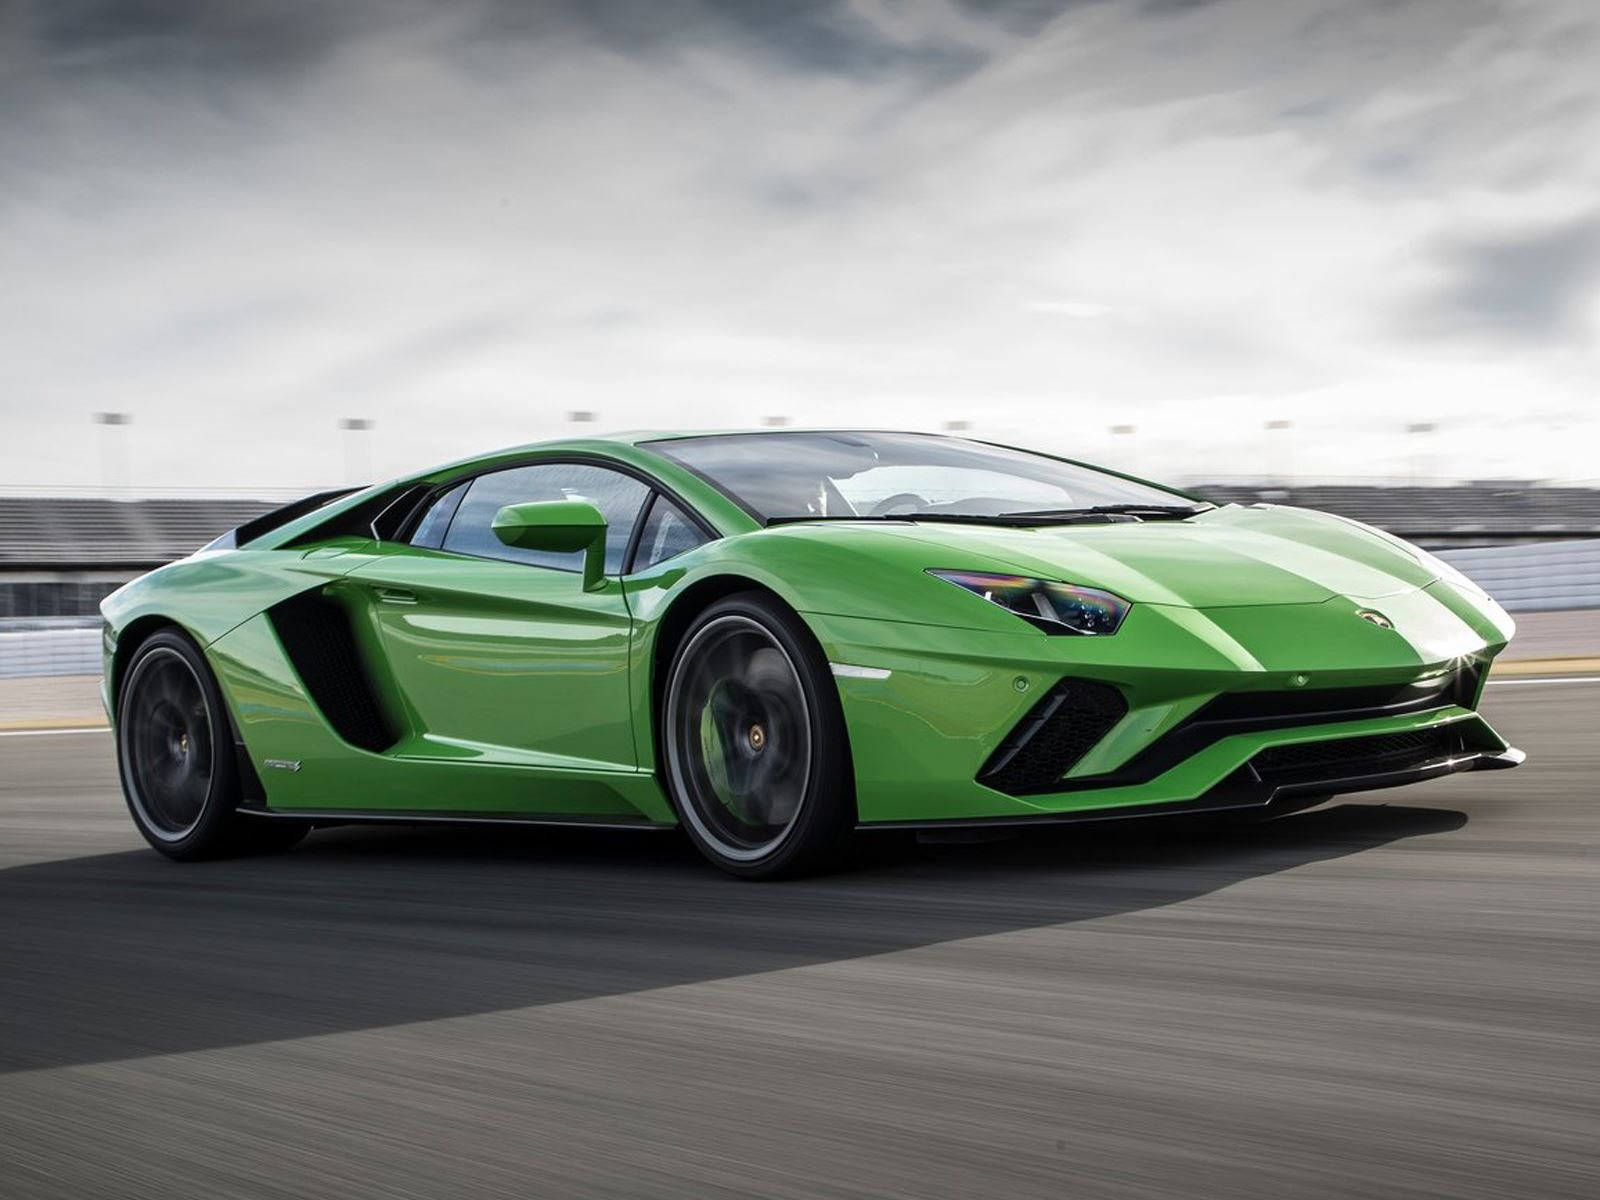 2019 lamborghini aventador performante price specs interior. Black Bedroom Furniture Sets. Home Design Ideas